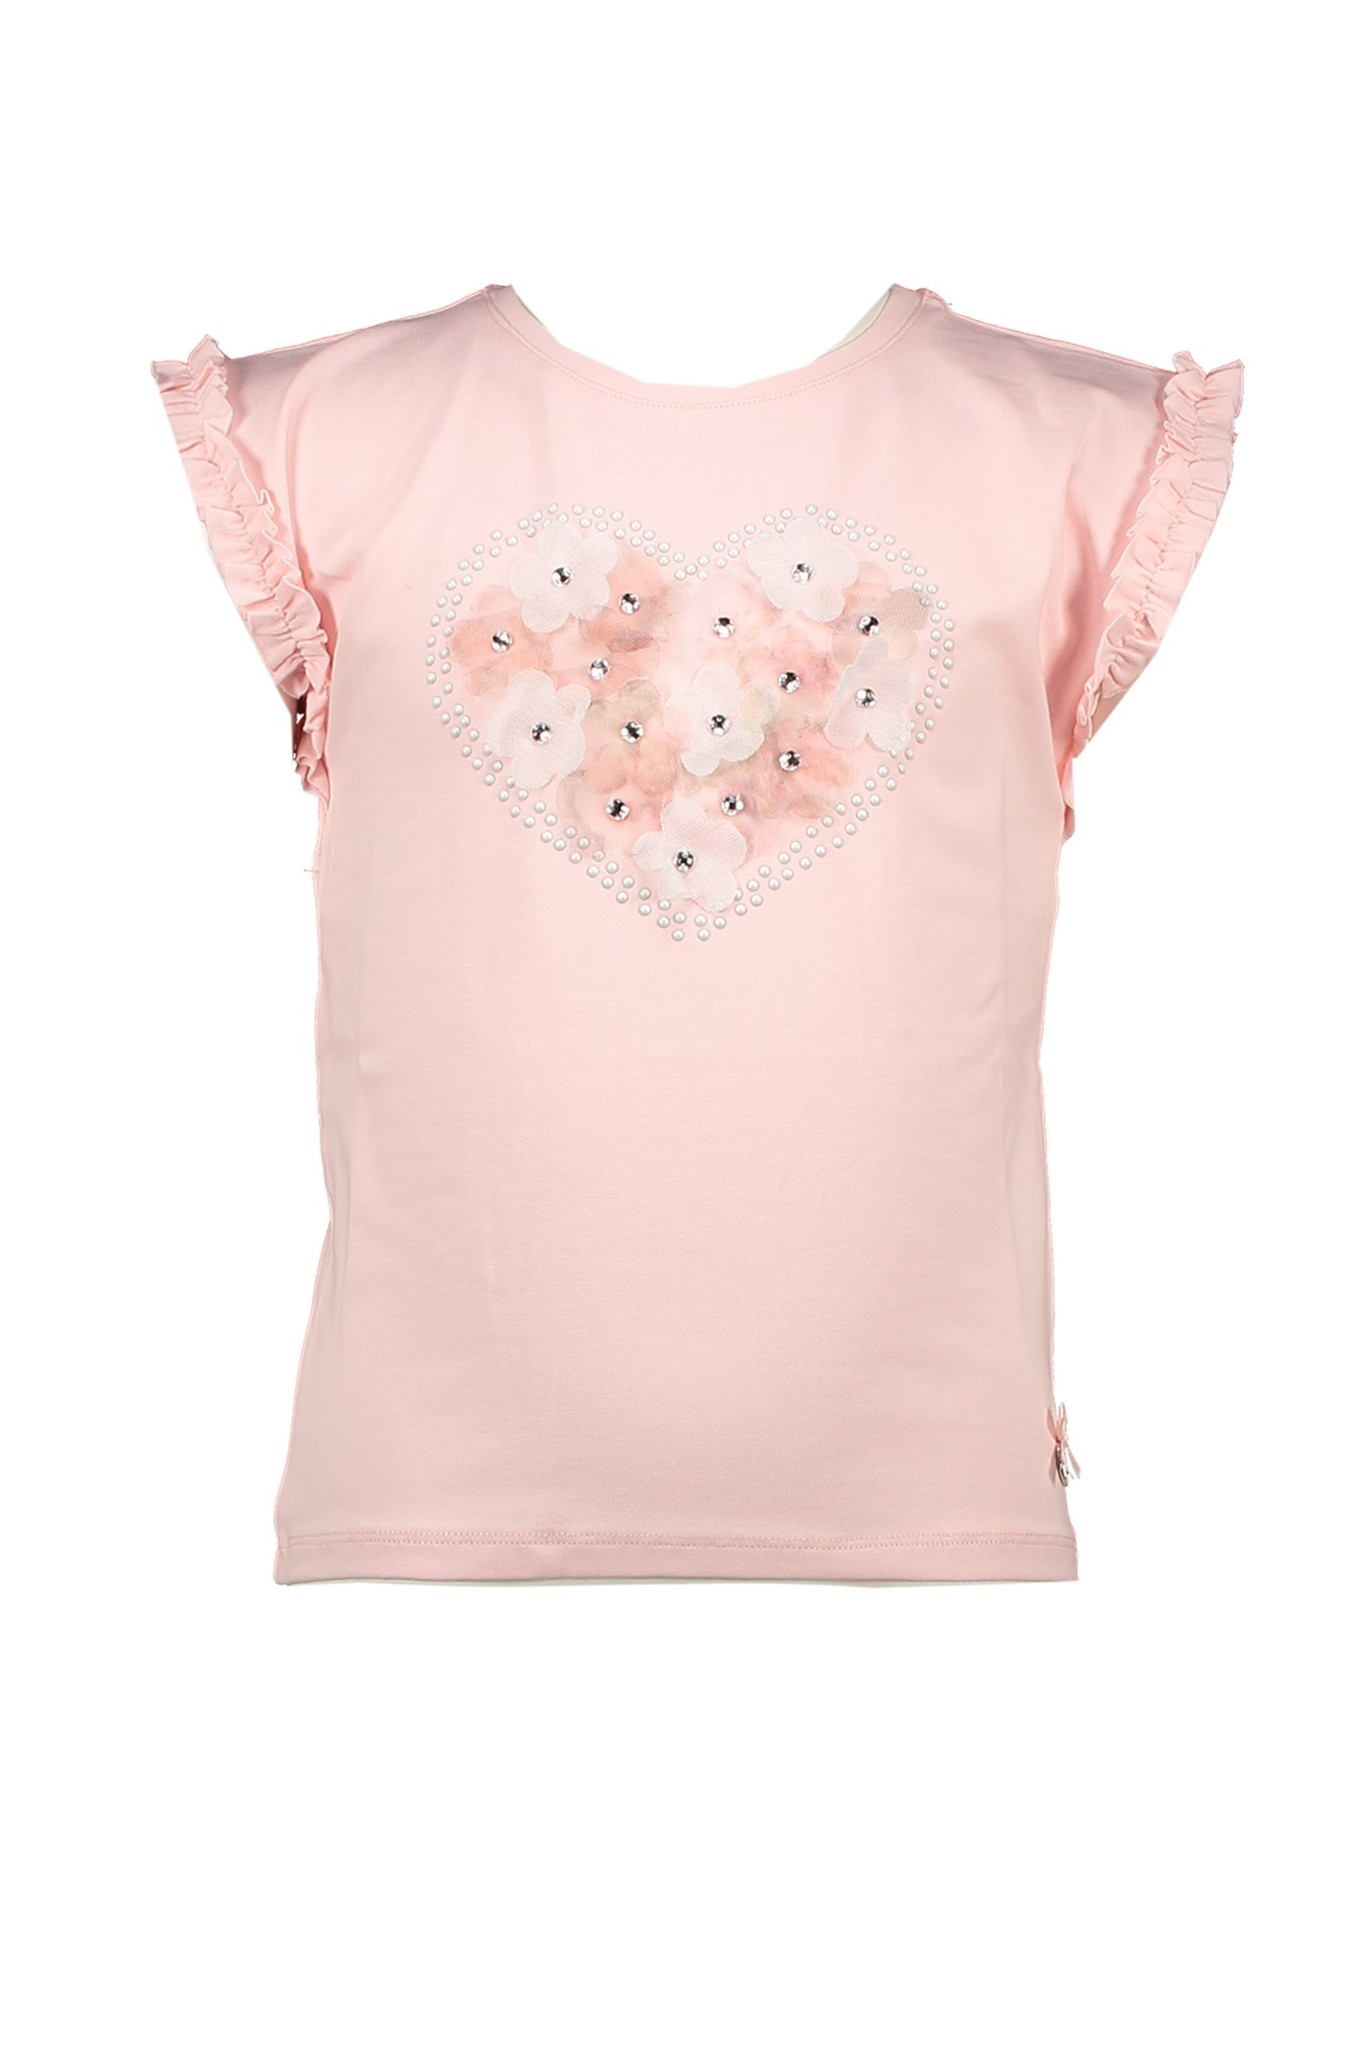 Lechic Le Chic Heart Shaped Flower T-Shirt